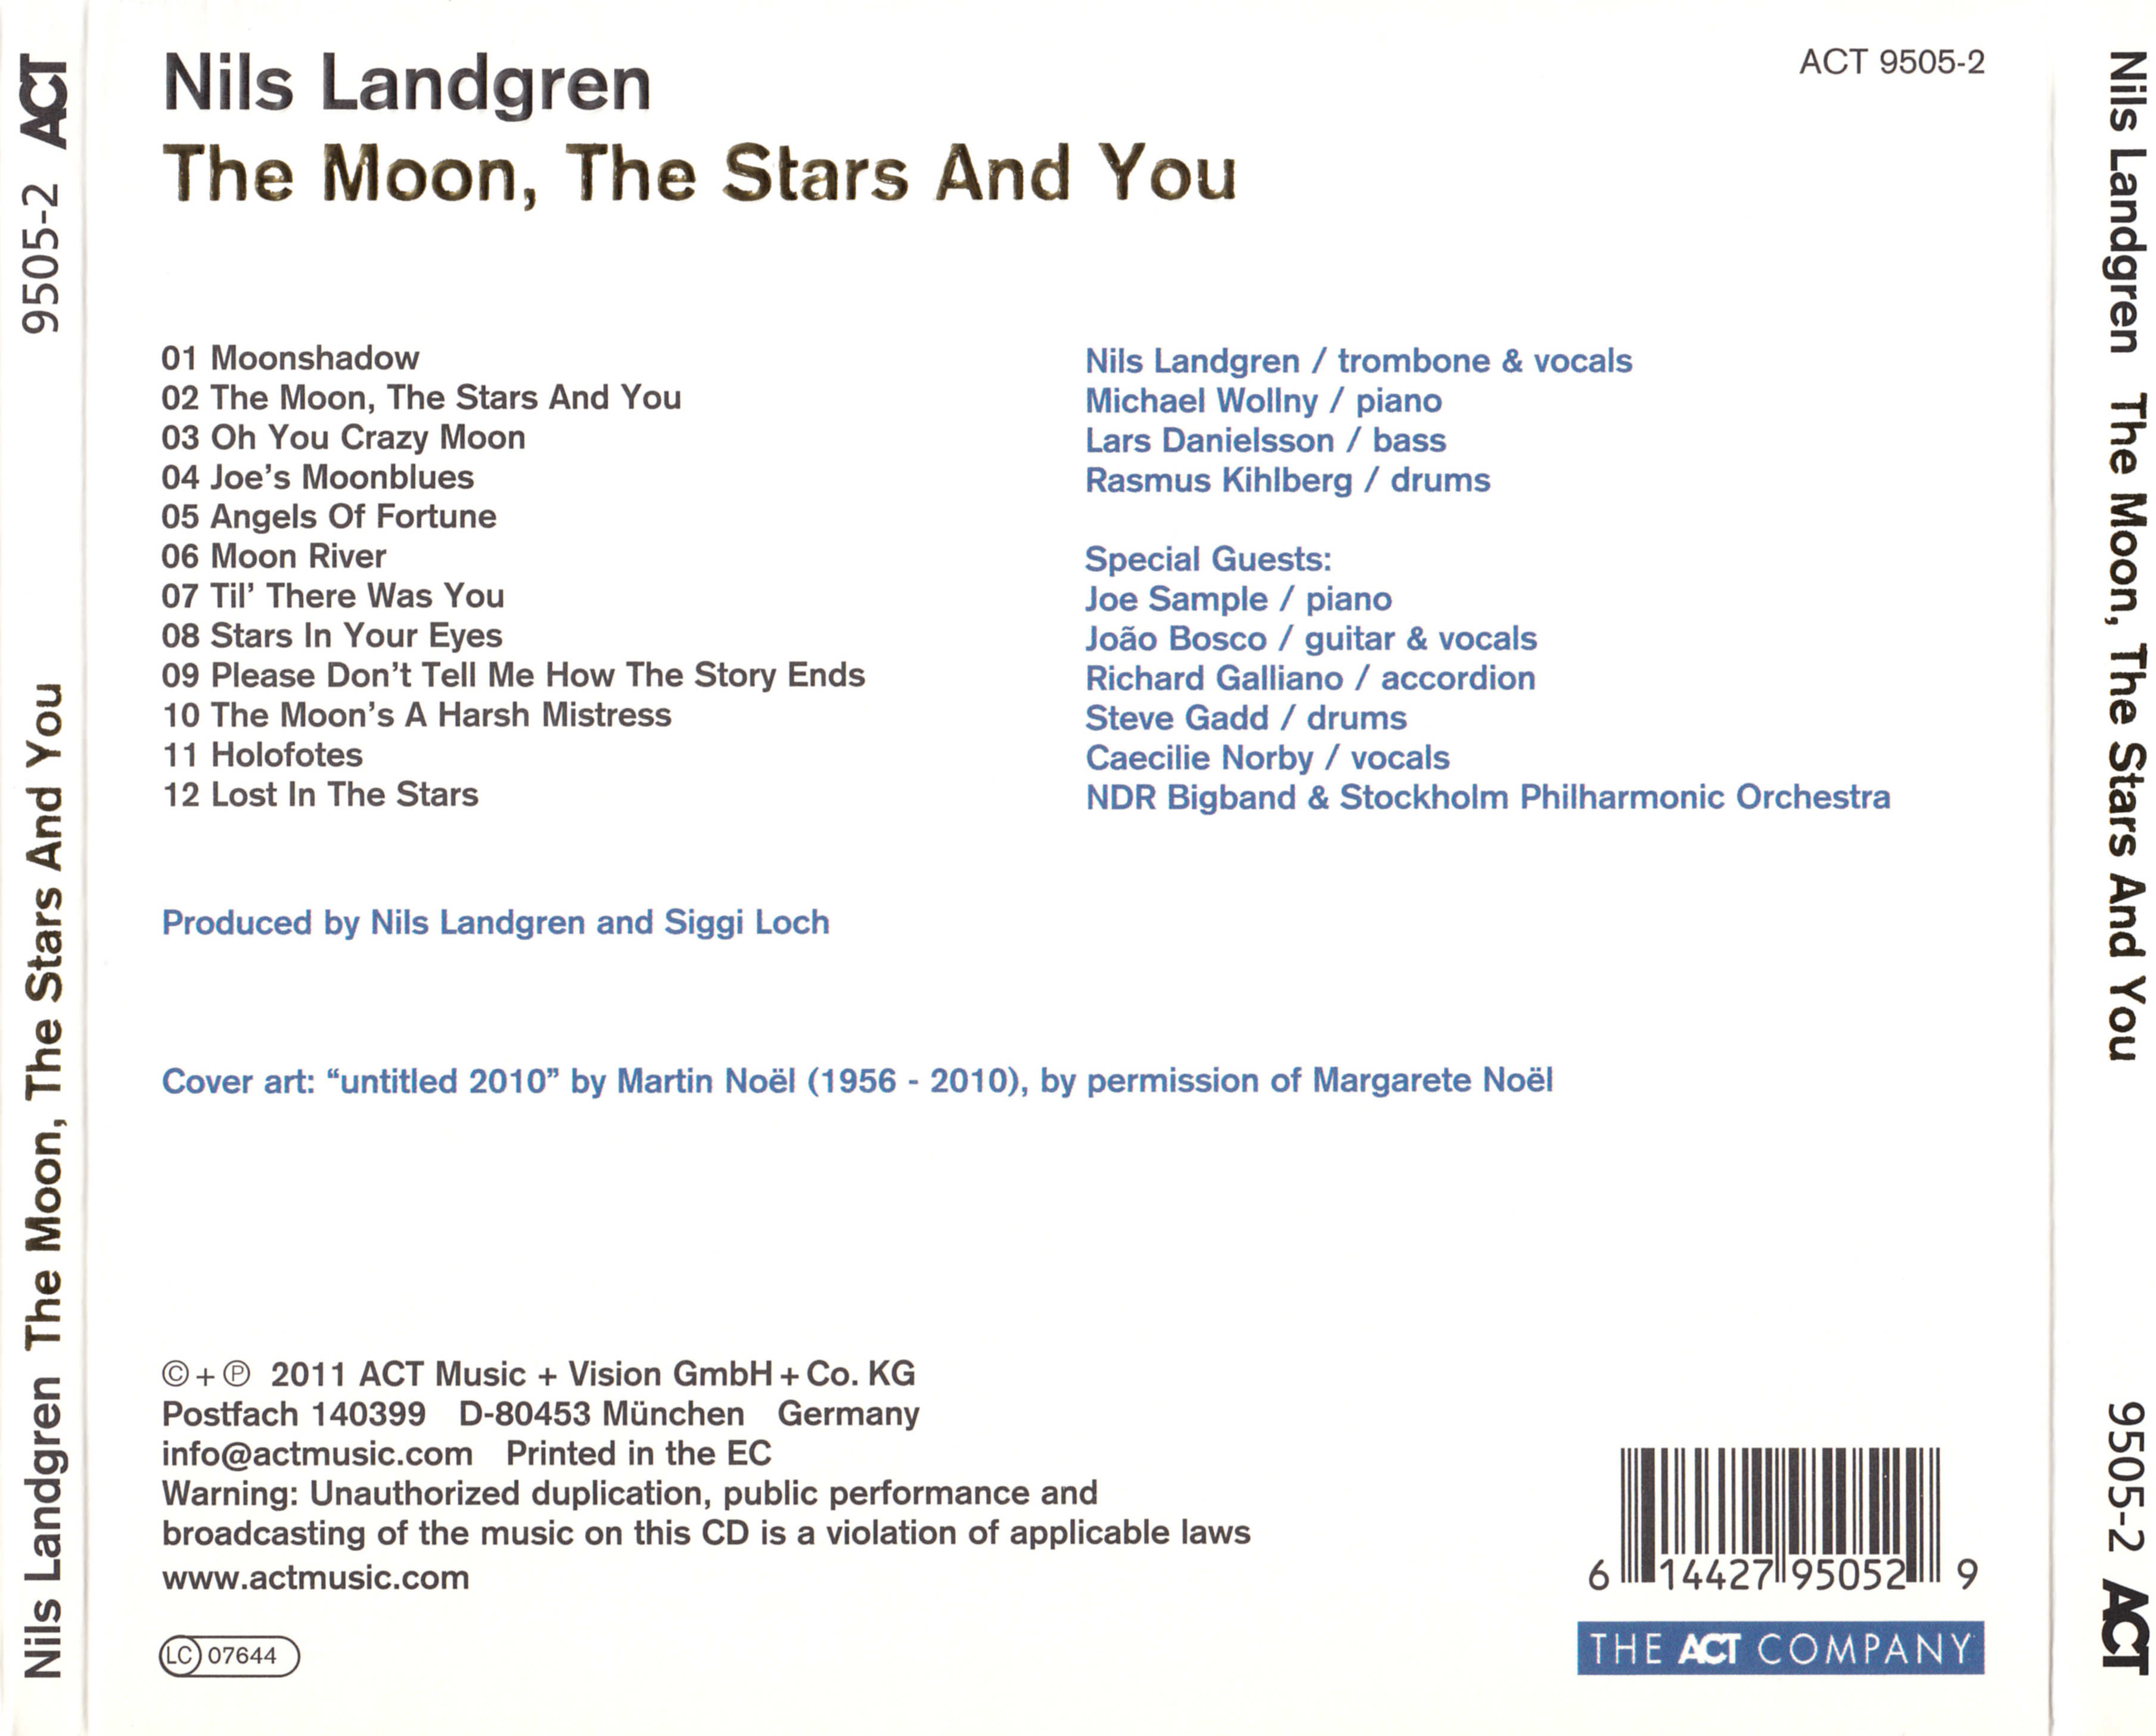 nils landgren the moon the stars and you